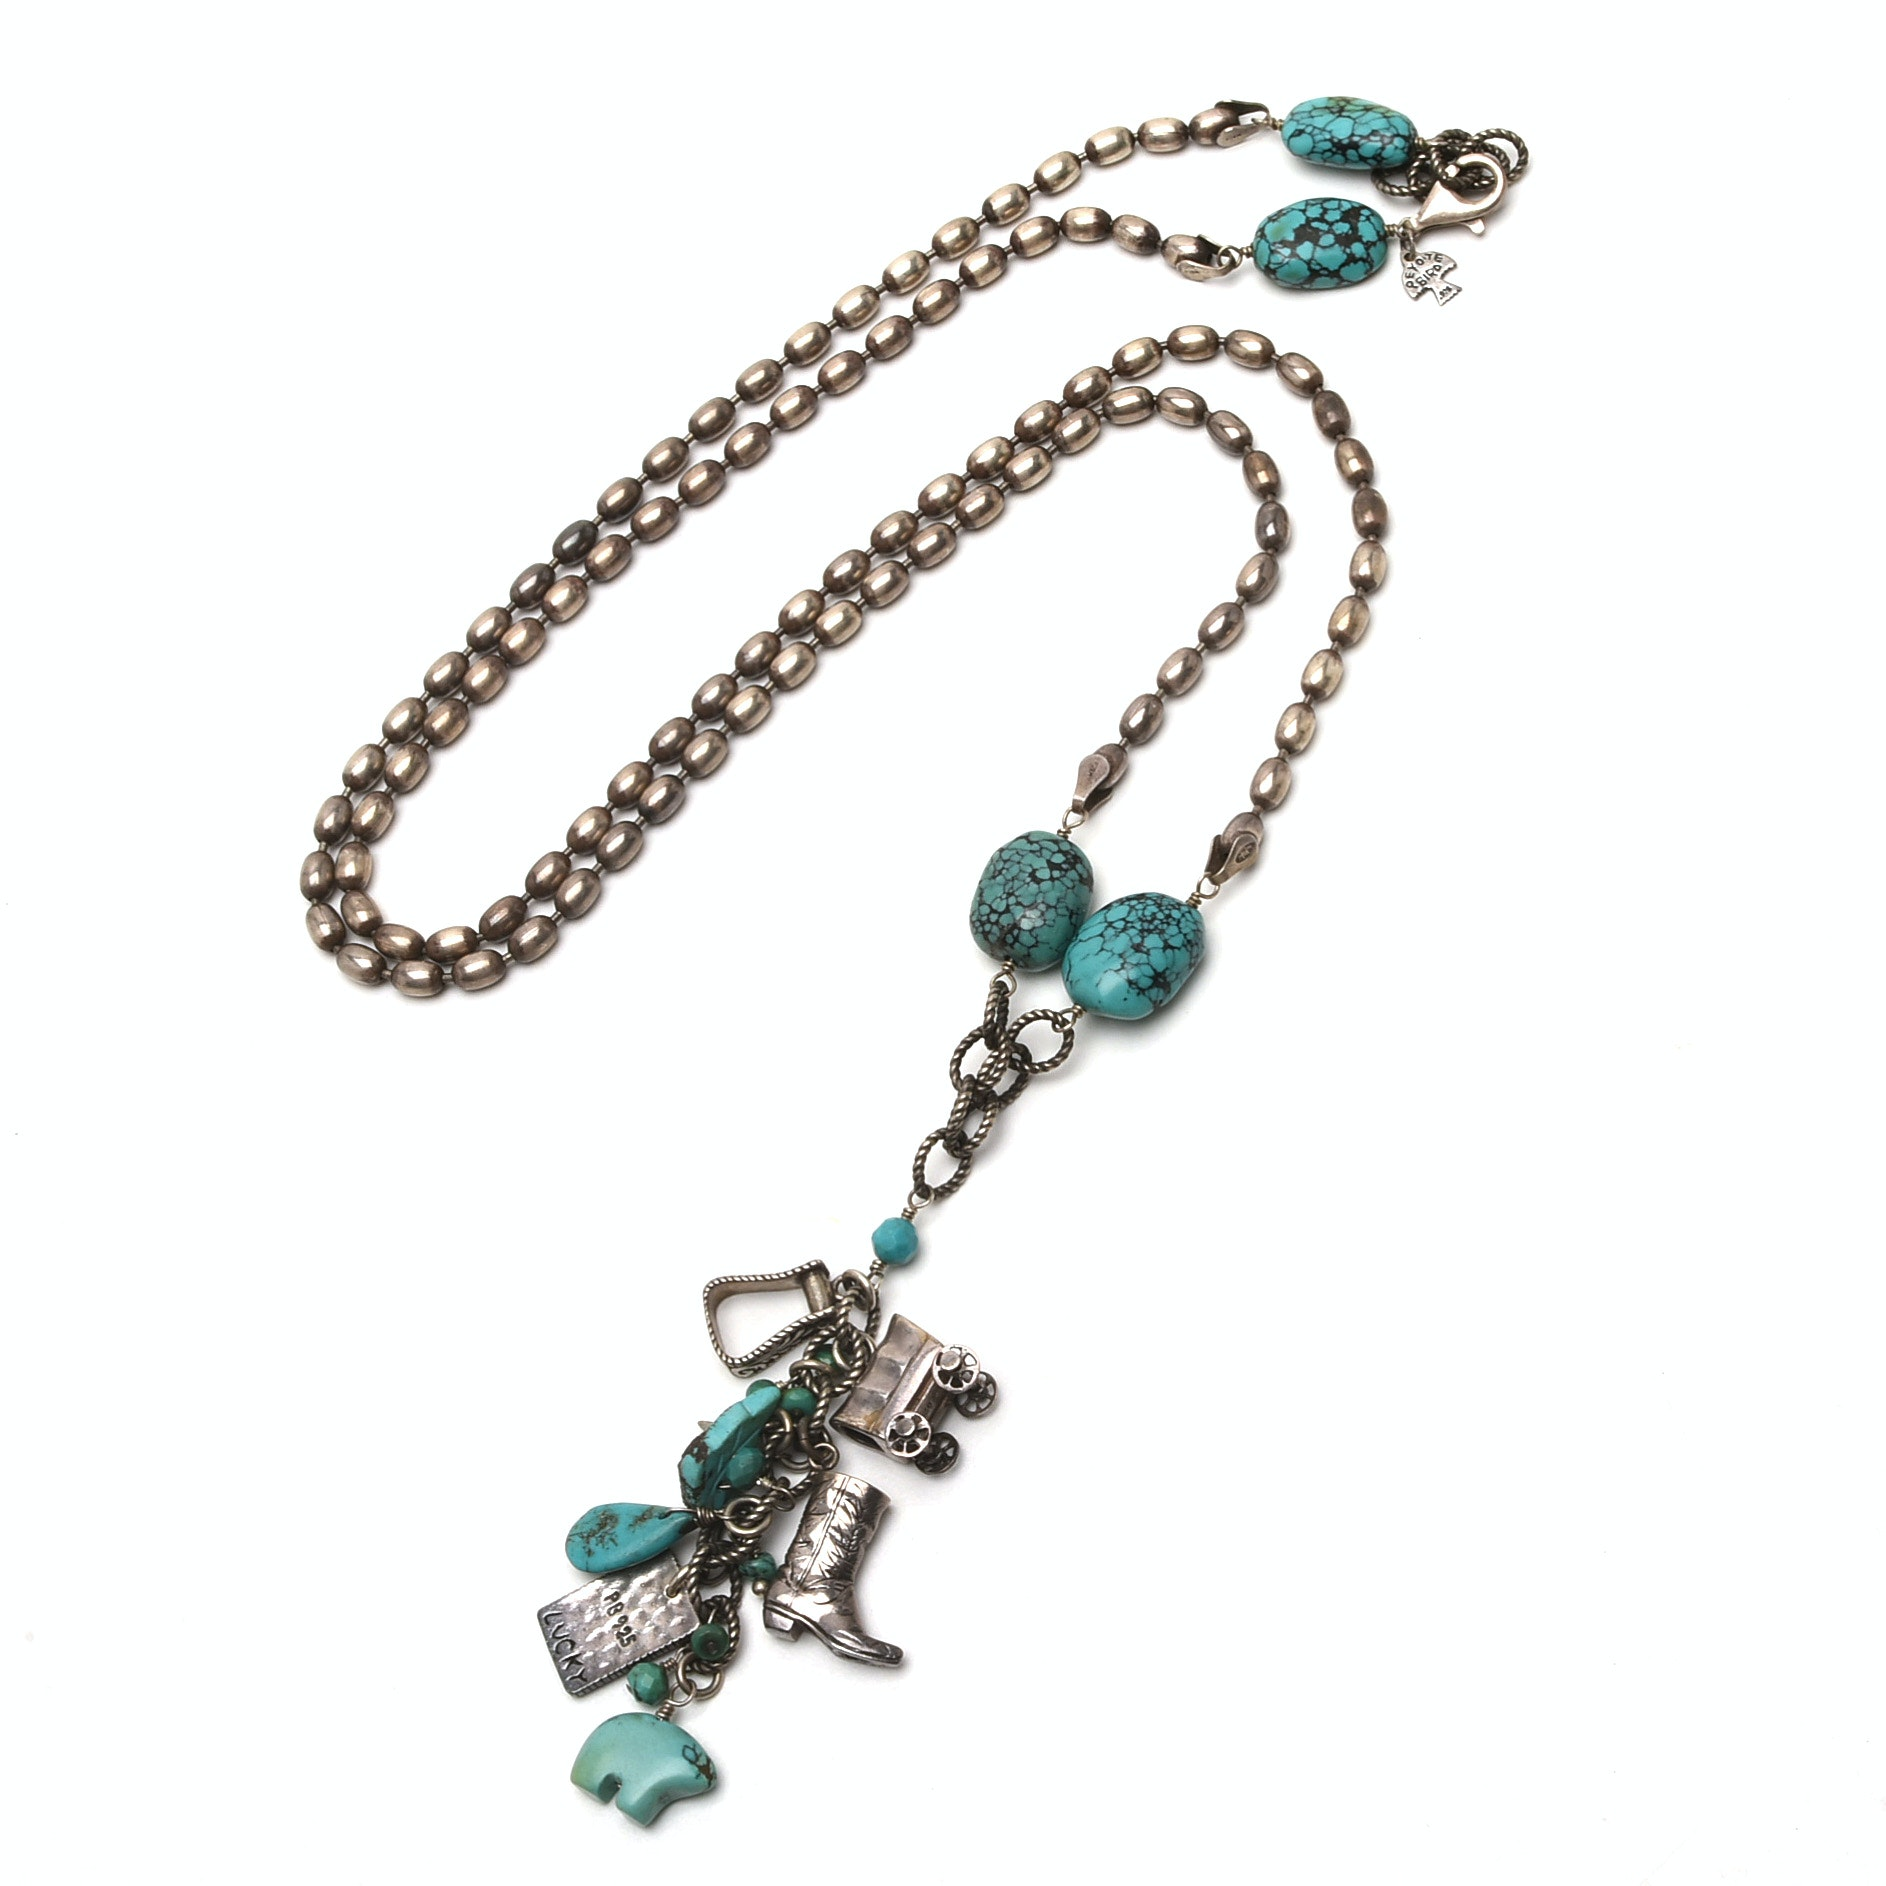 Peyote Bird Designs Sterling Silver Turquoise Southwest Themed Necklace